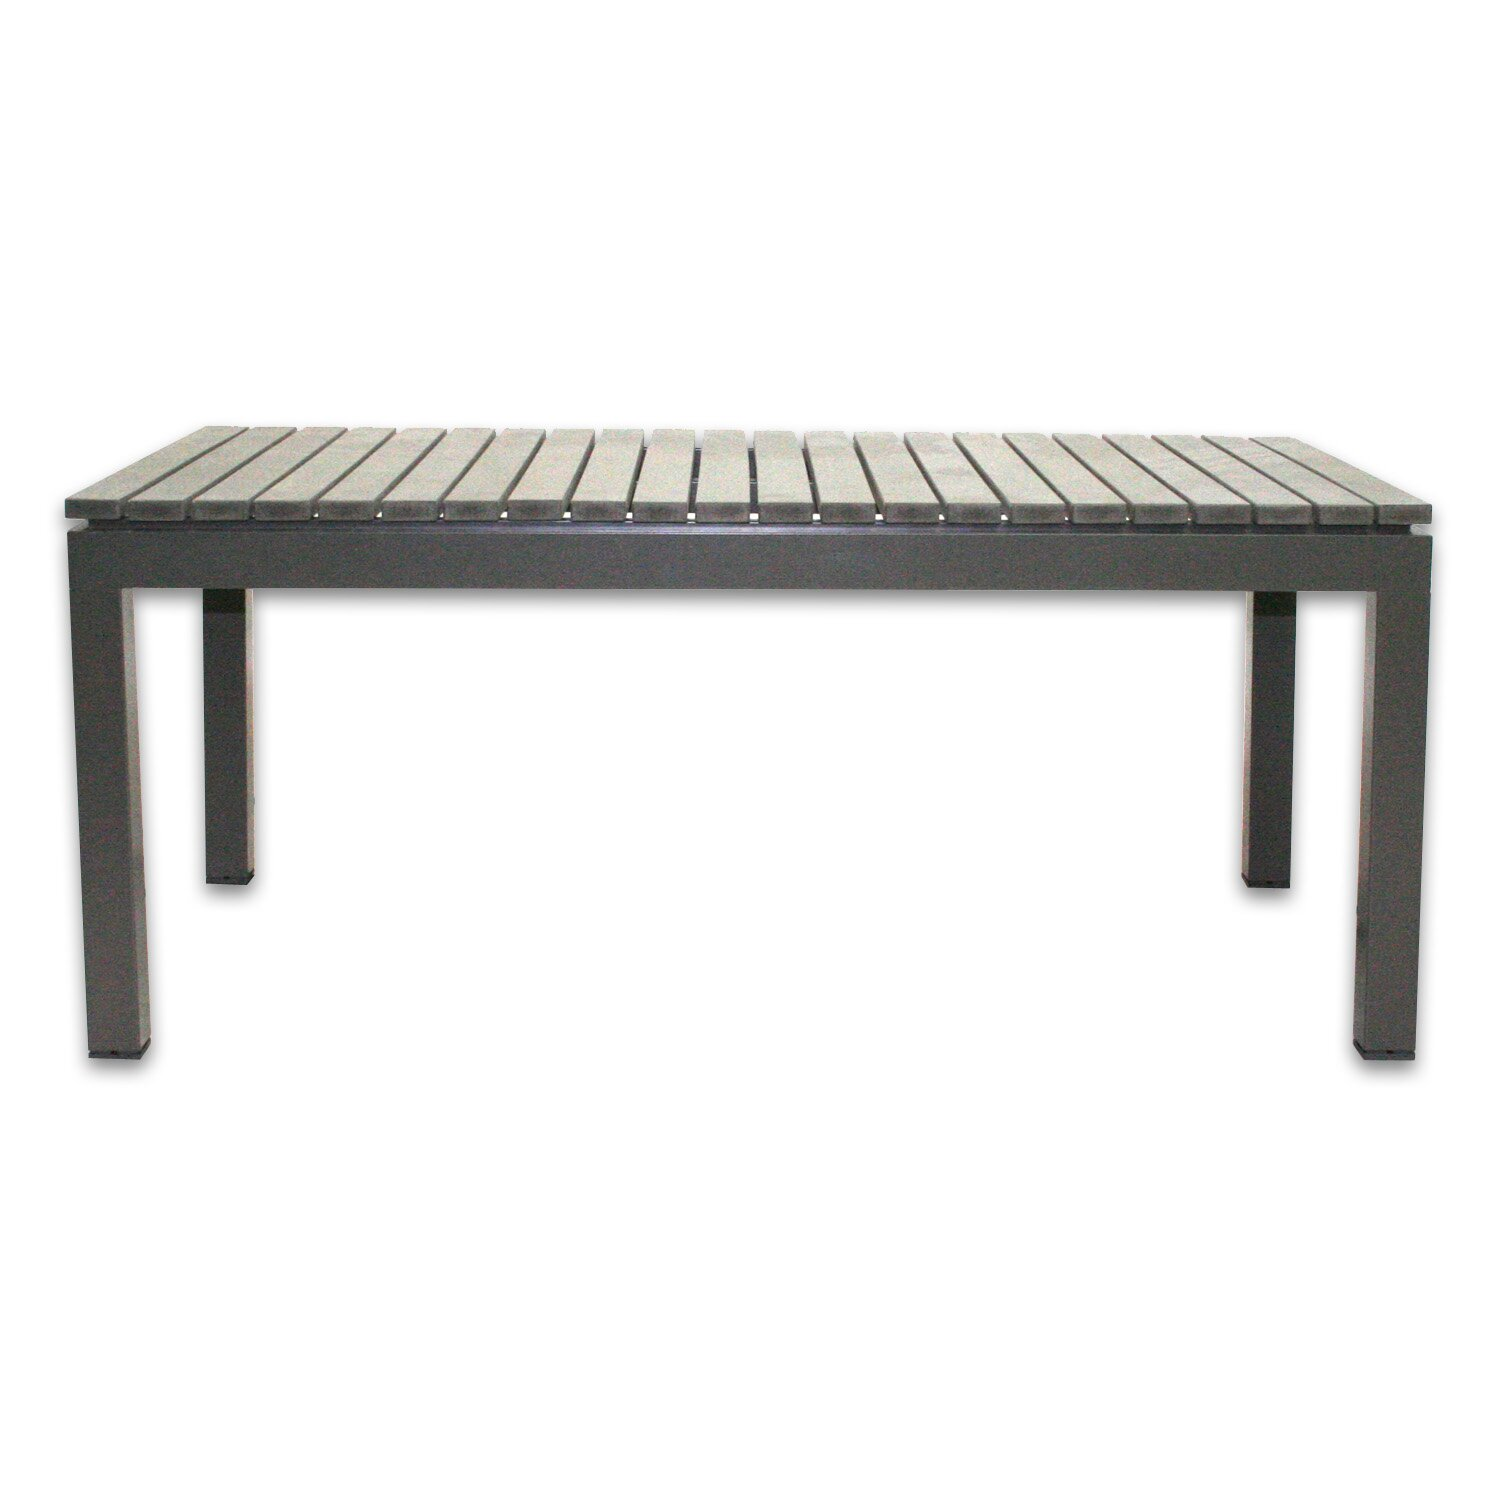 Patio heaven riviera coffee table reviews wayfair for Wayfair outdoor coffee table